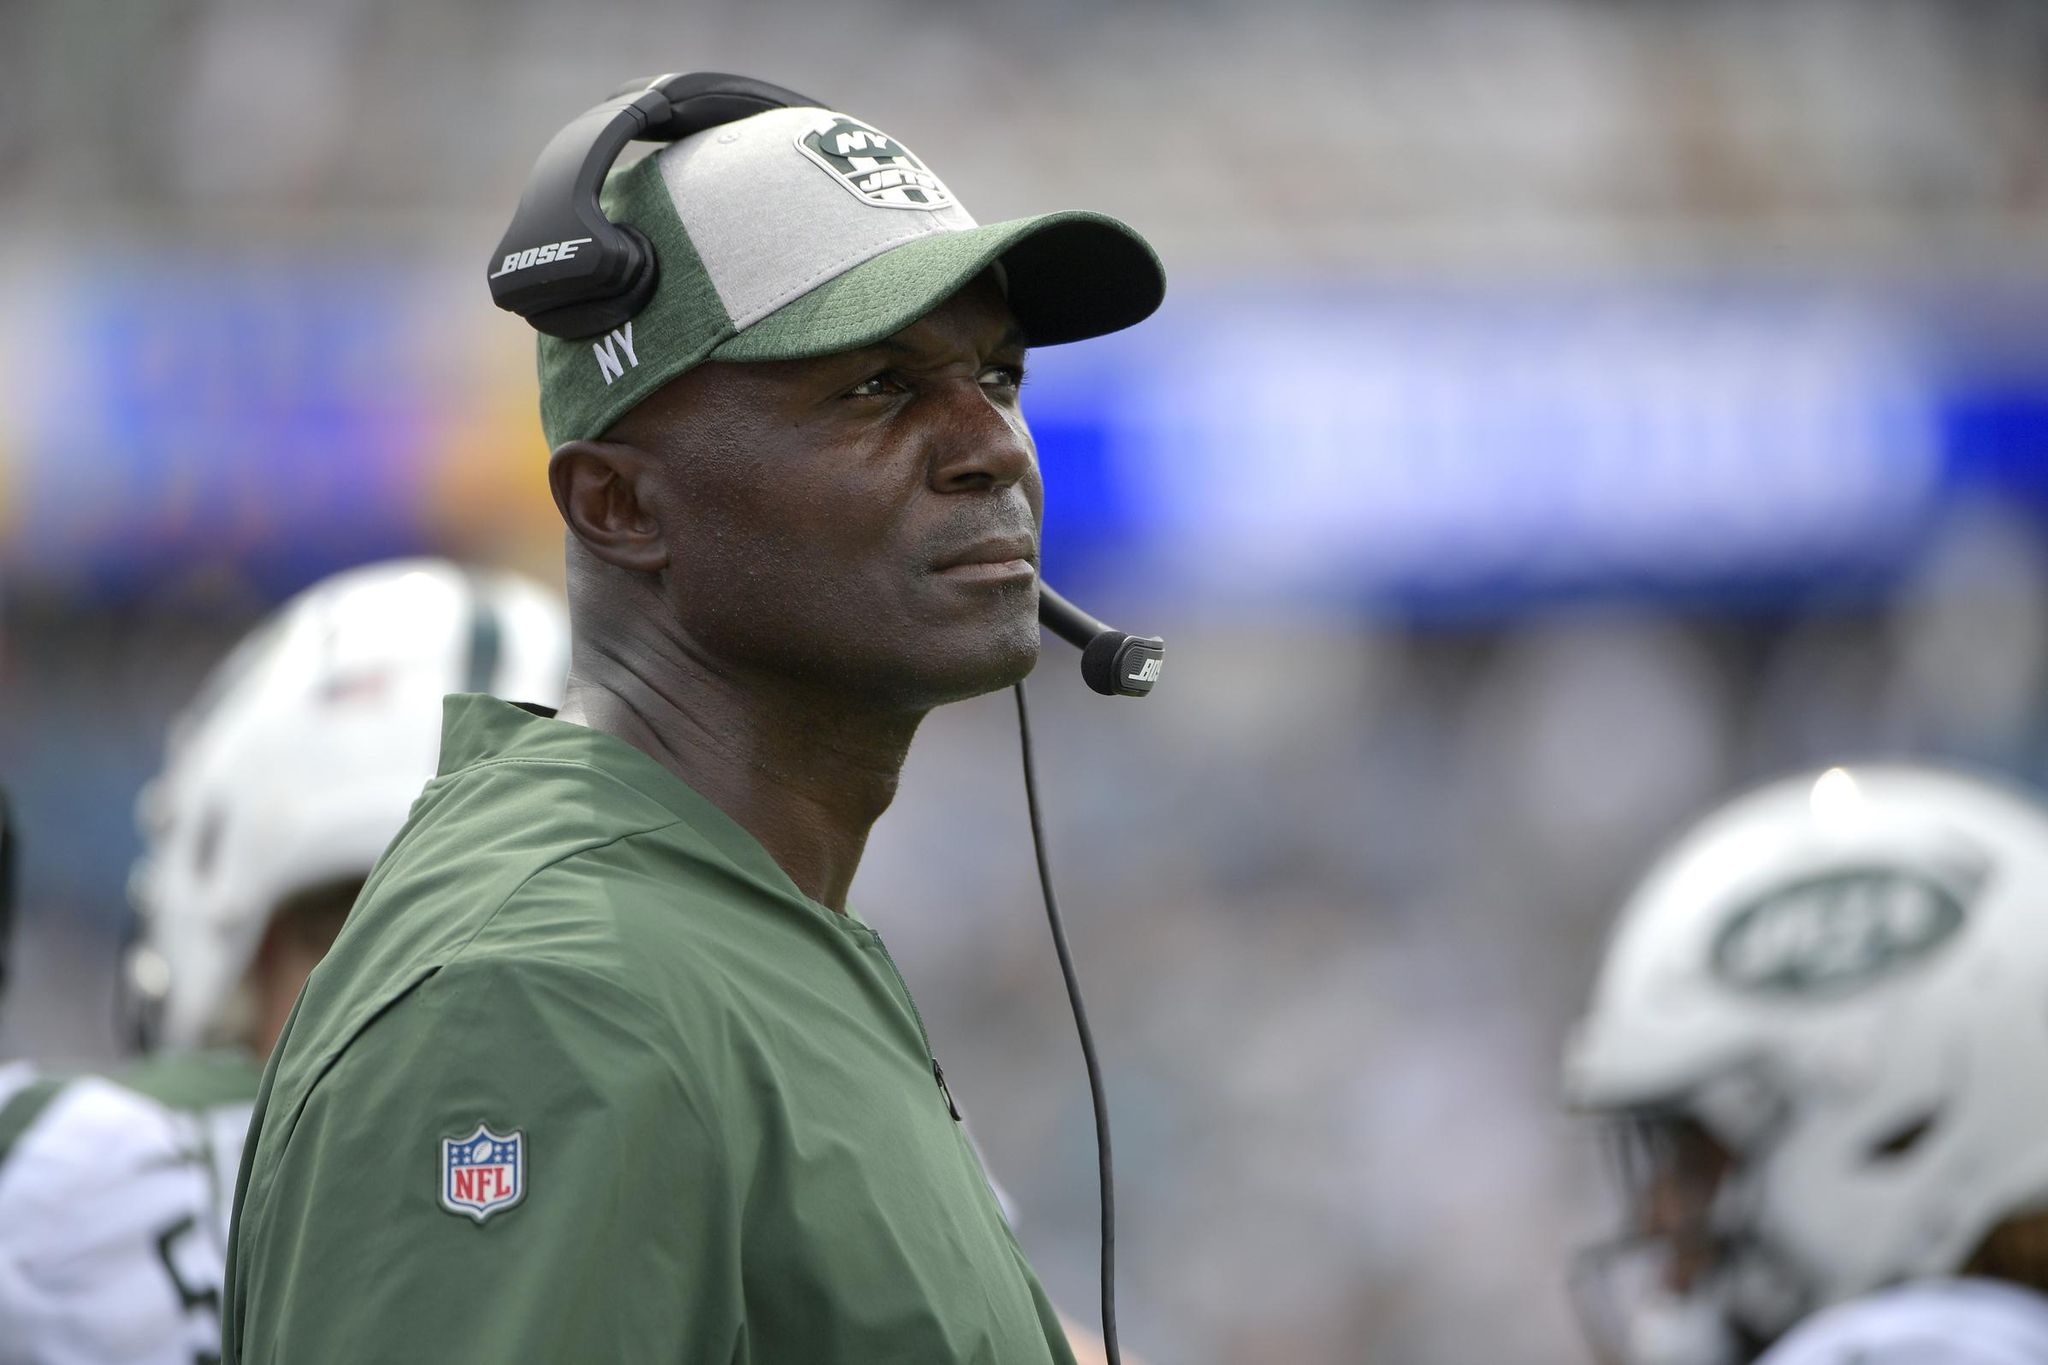 Jets-embattled_bowles_football_38495_s2048x1365